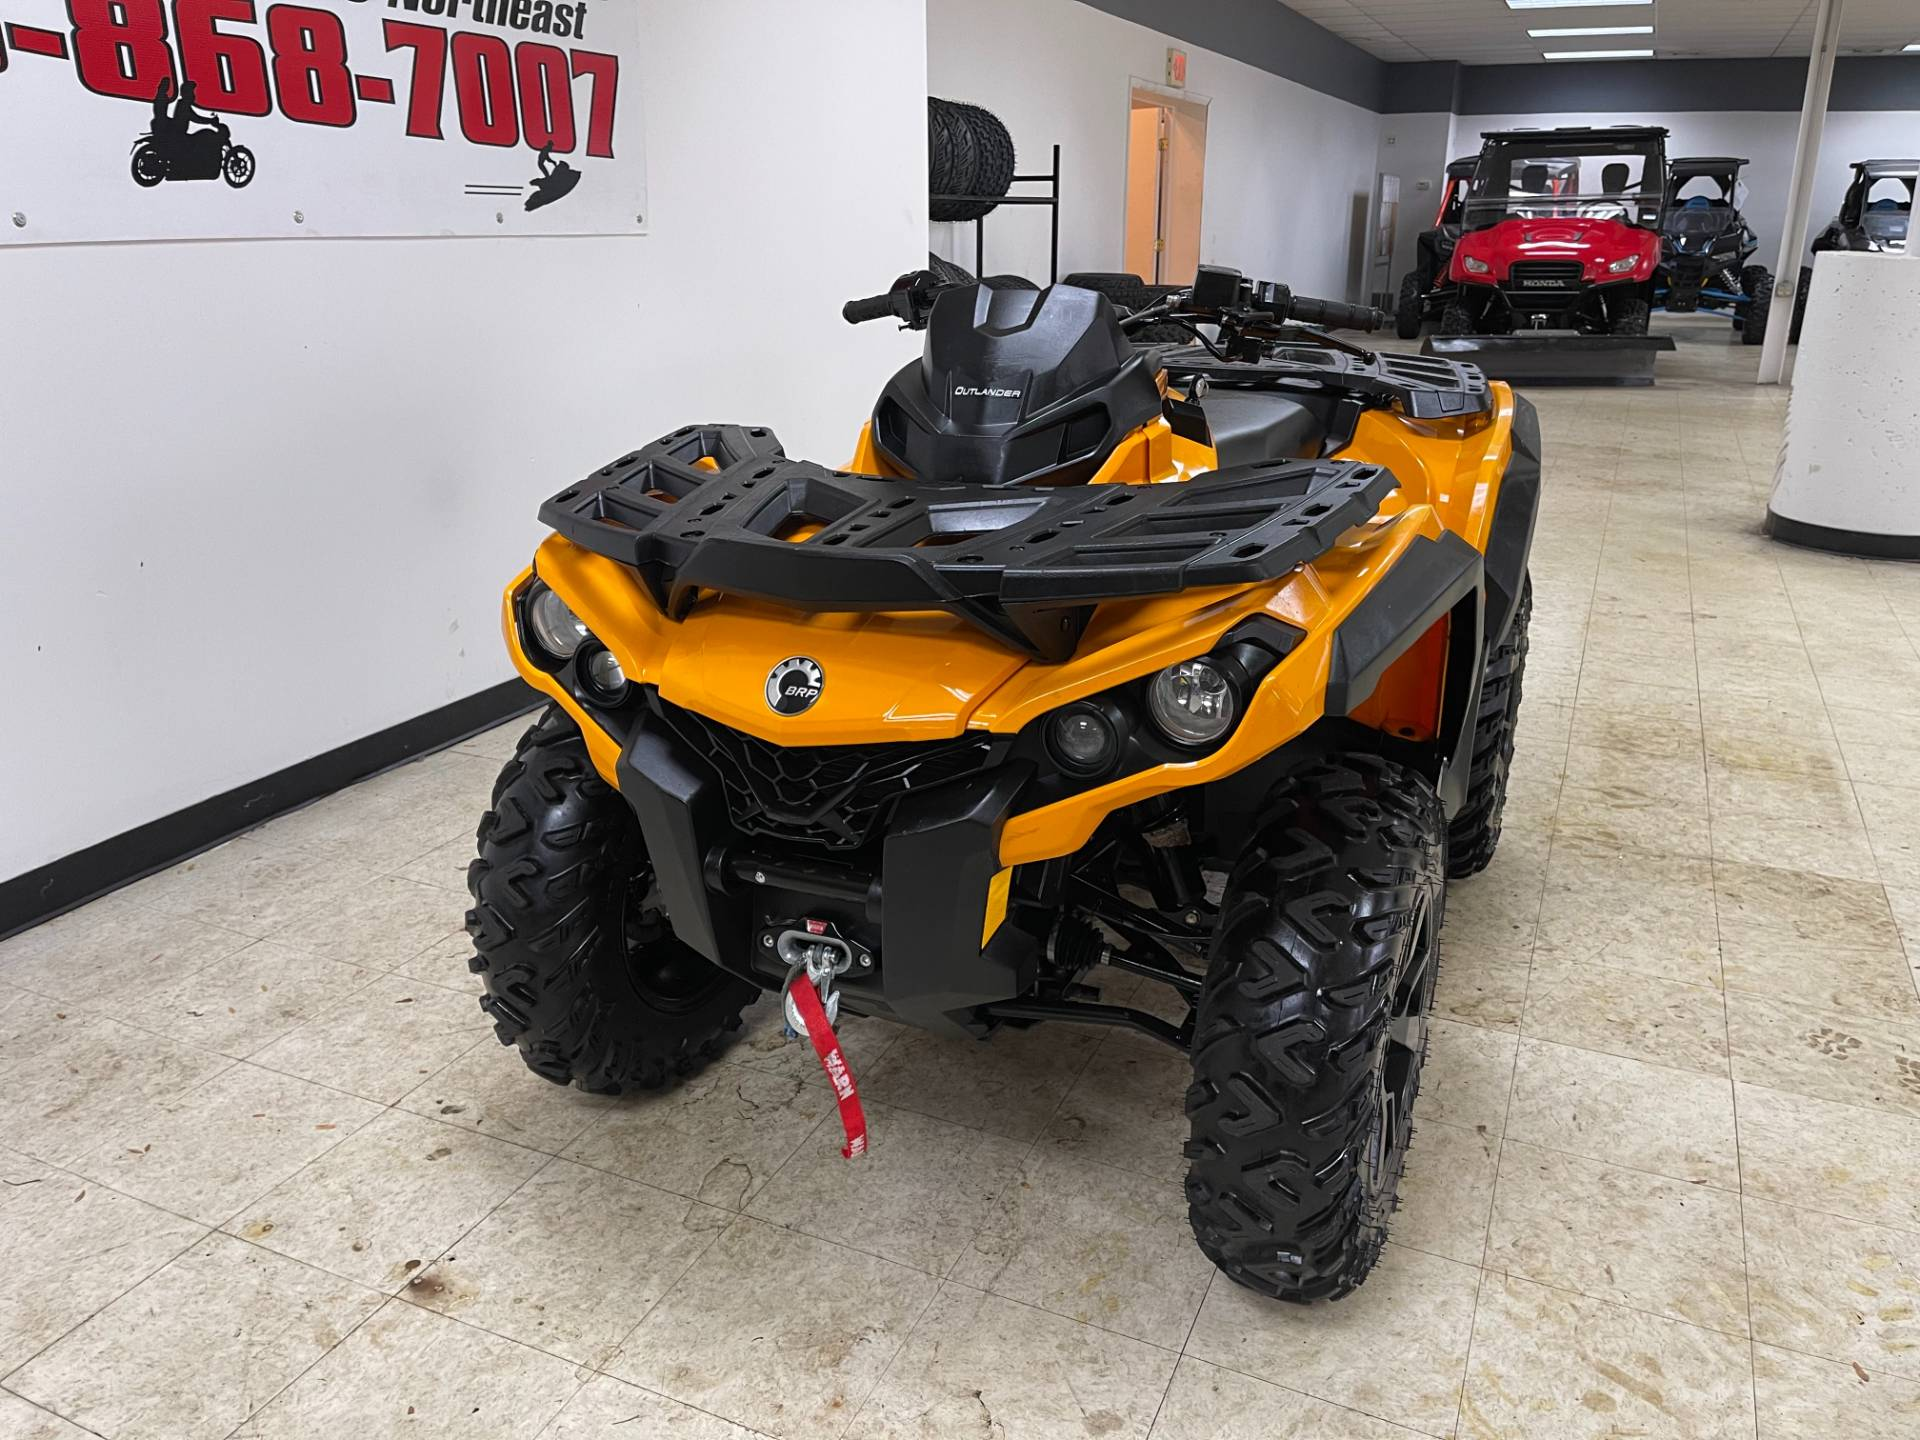 2019 Can-Am Outlander DPS 850 in Herkimer, New York - Photo 6